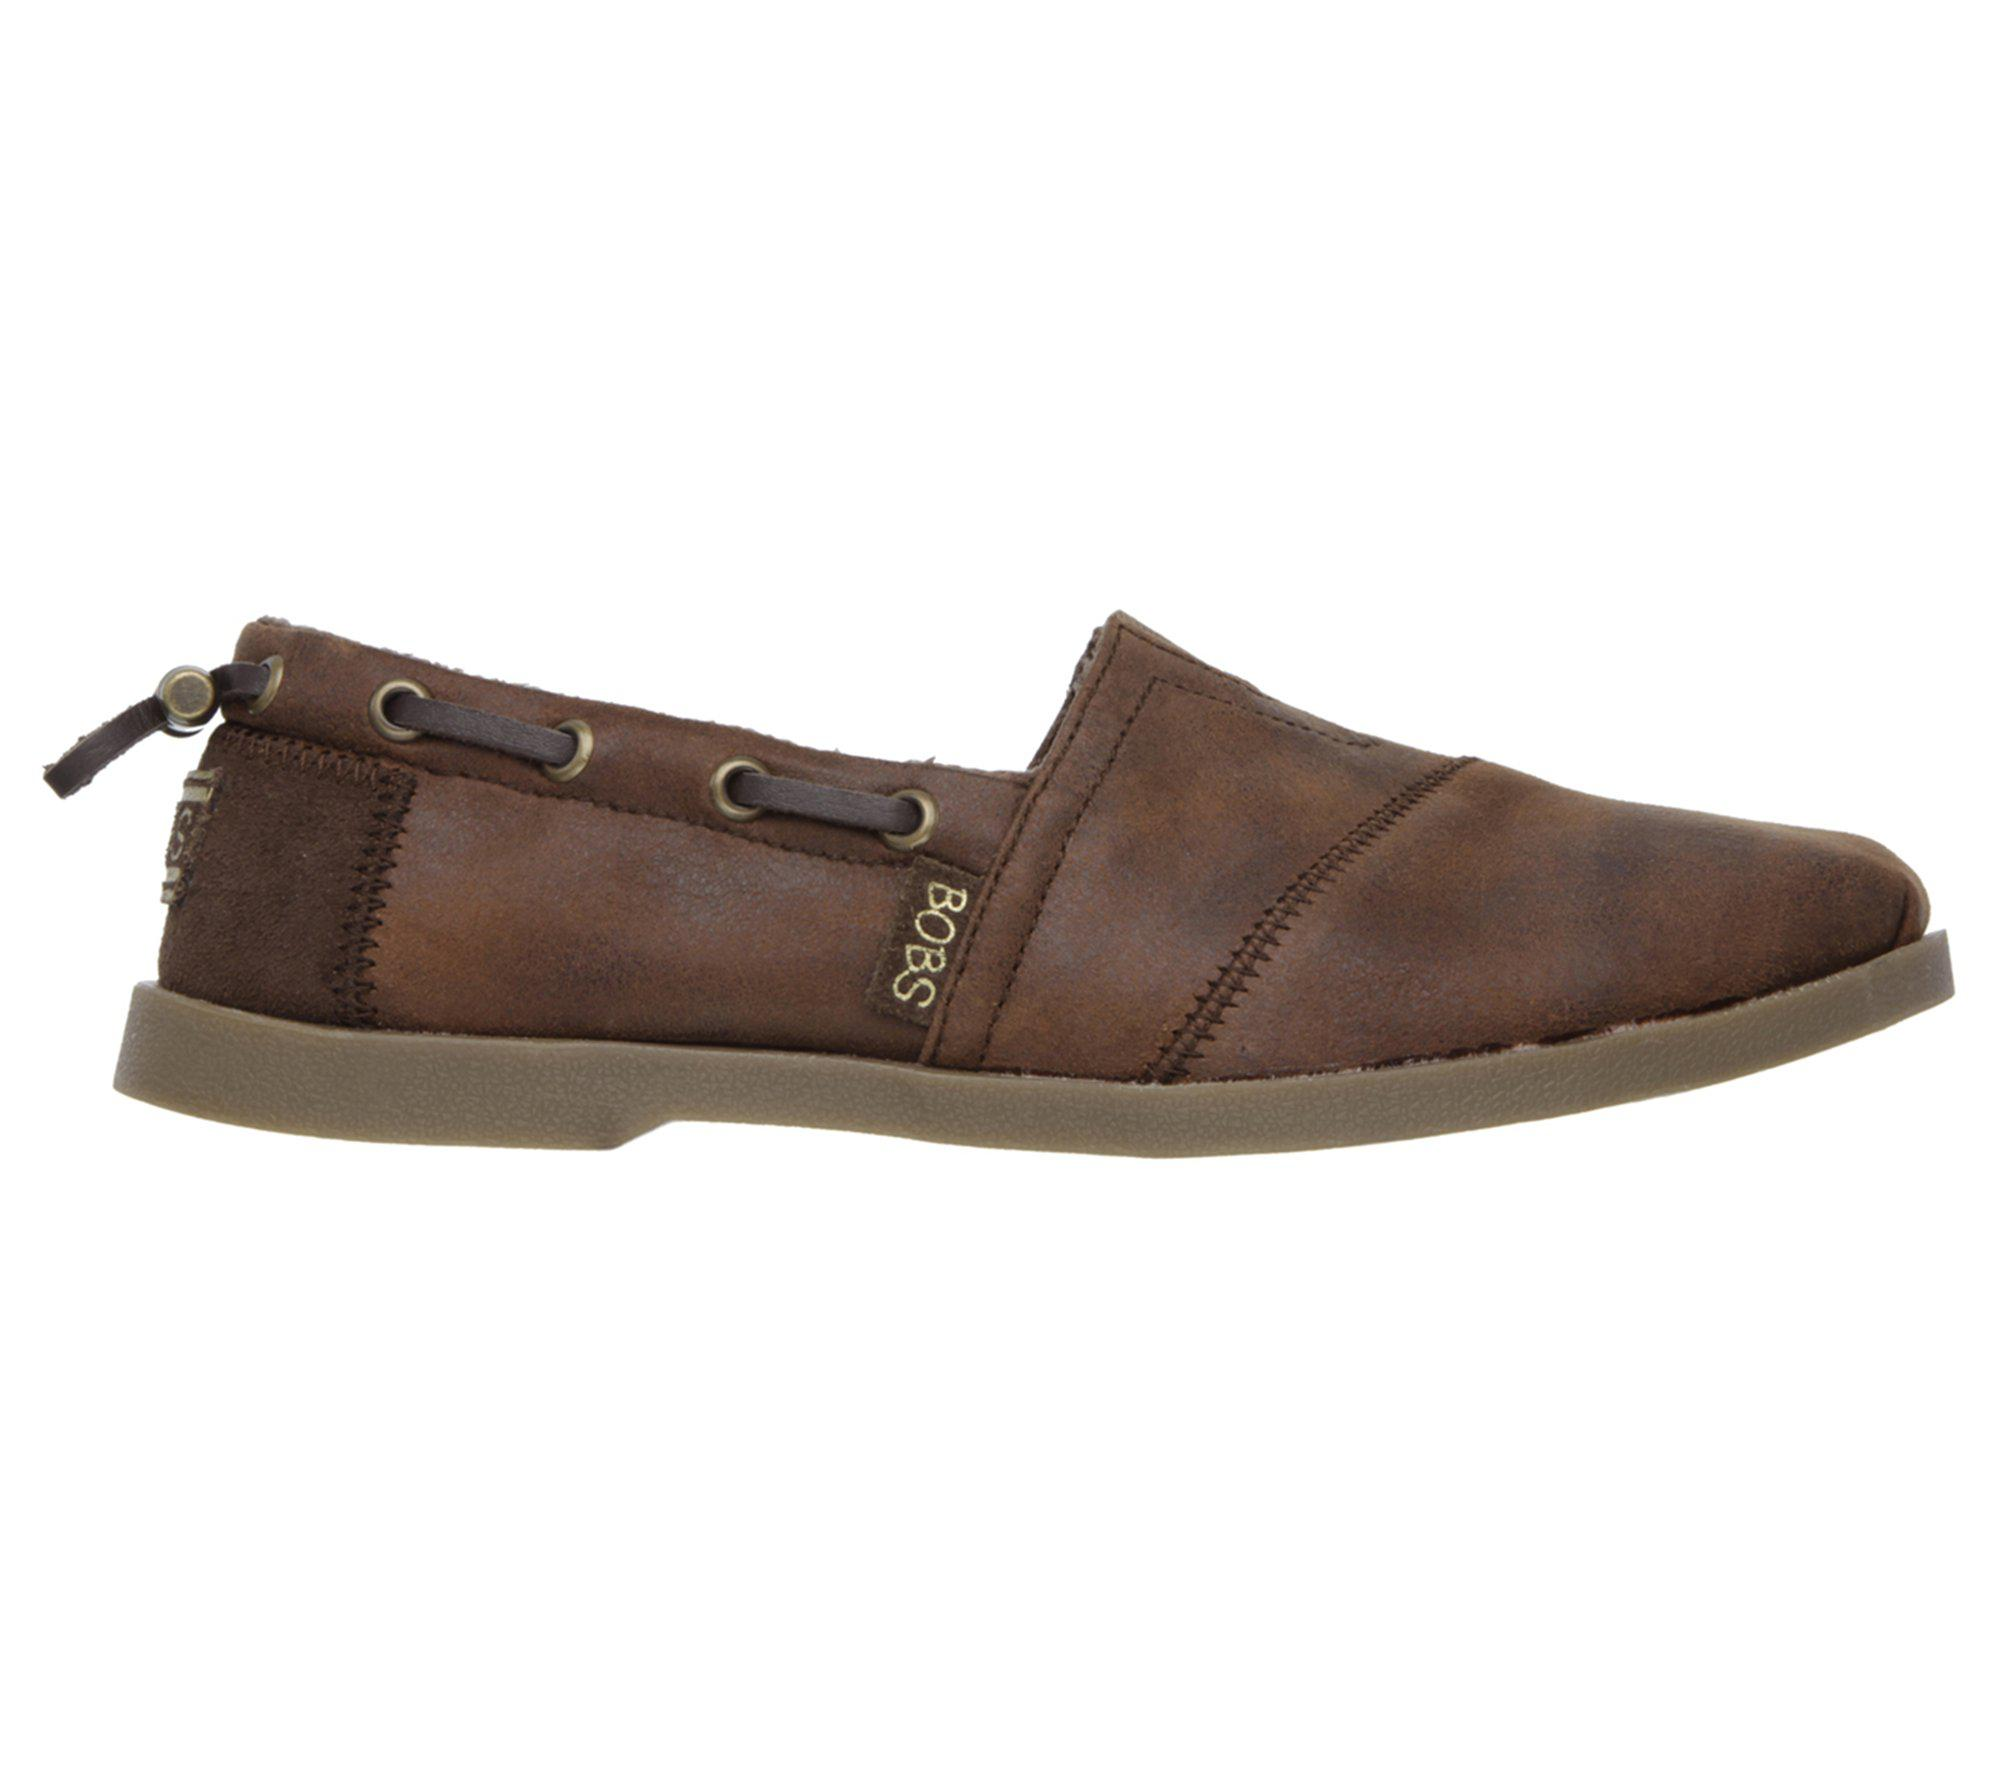 09153fbc8e4 Lyst - Skechers Bobs Chill Luxe - Buttoned Up in Brown - Save 46%